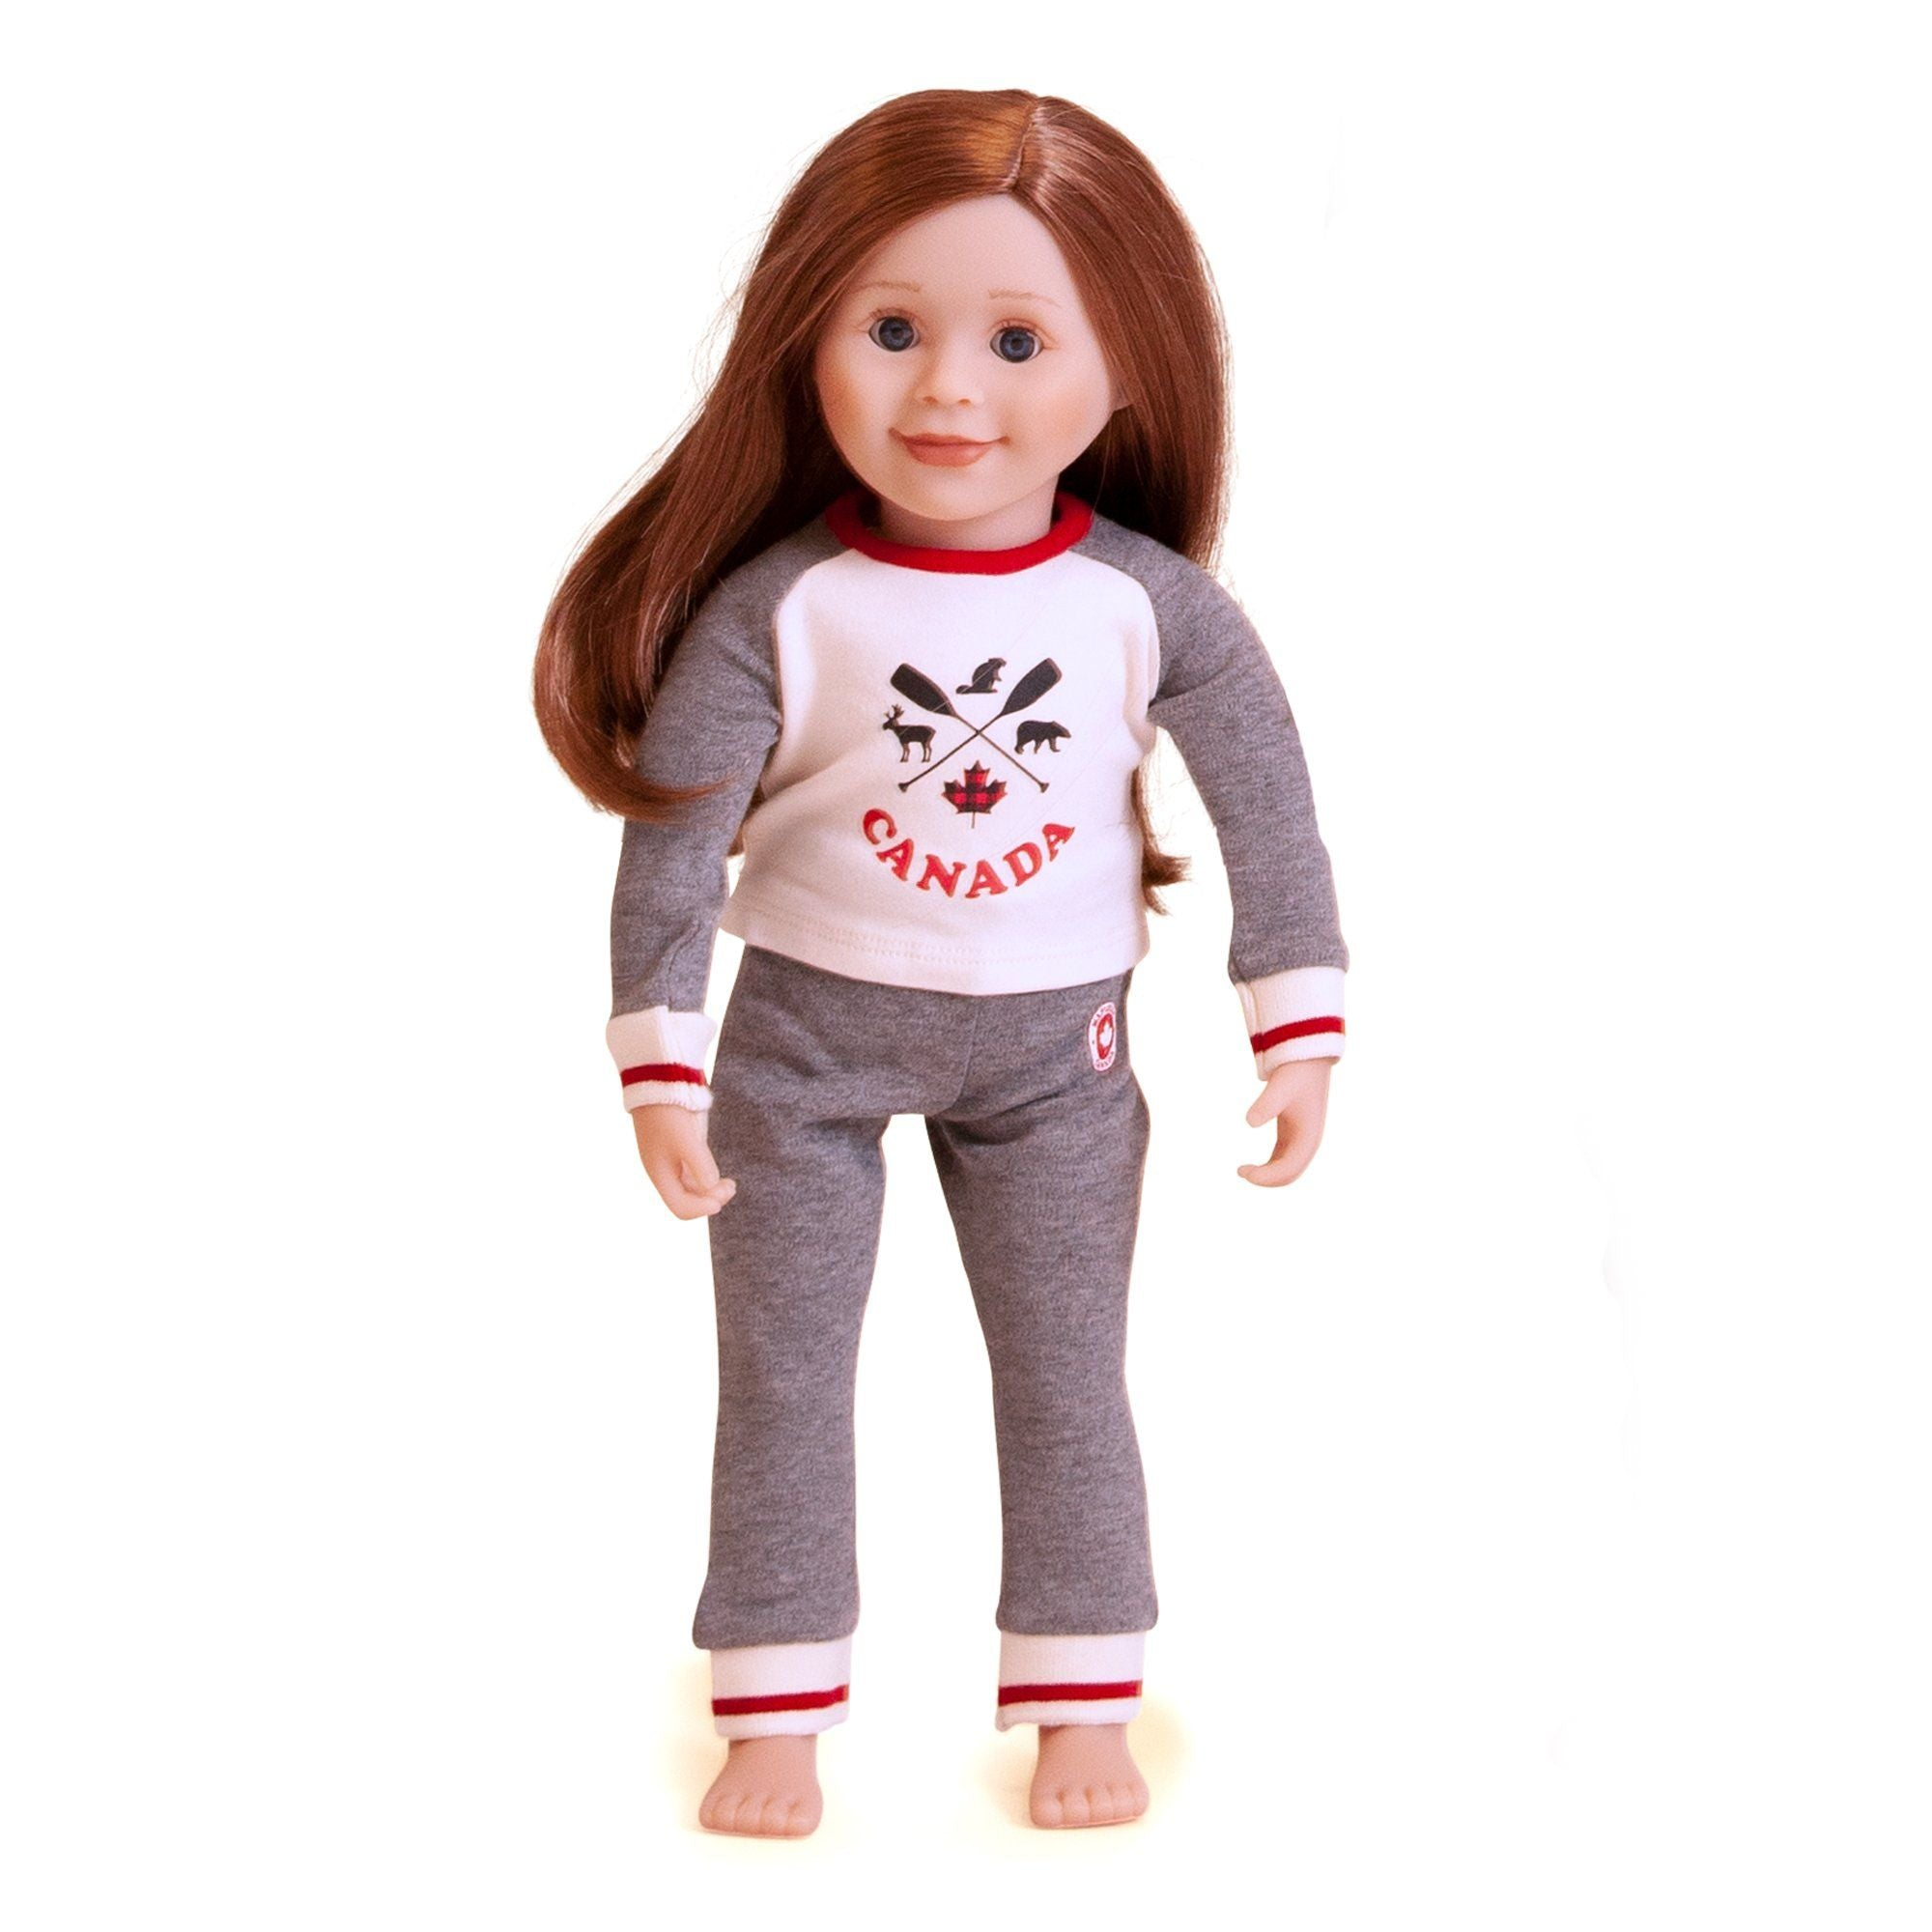 18 inch doll wearing pajamas, grey with red stripe on cuff